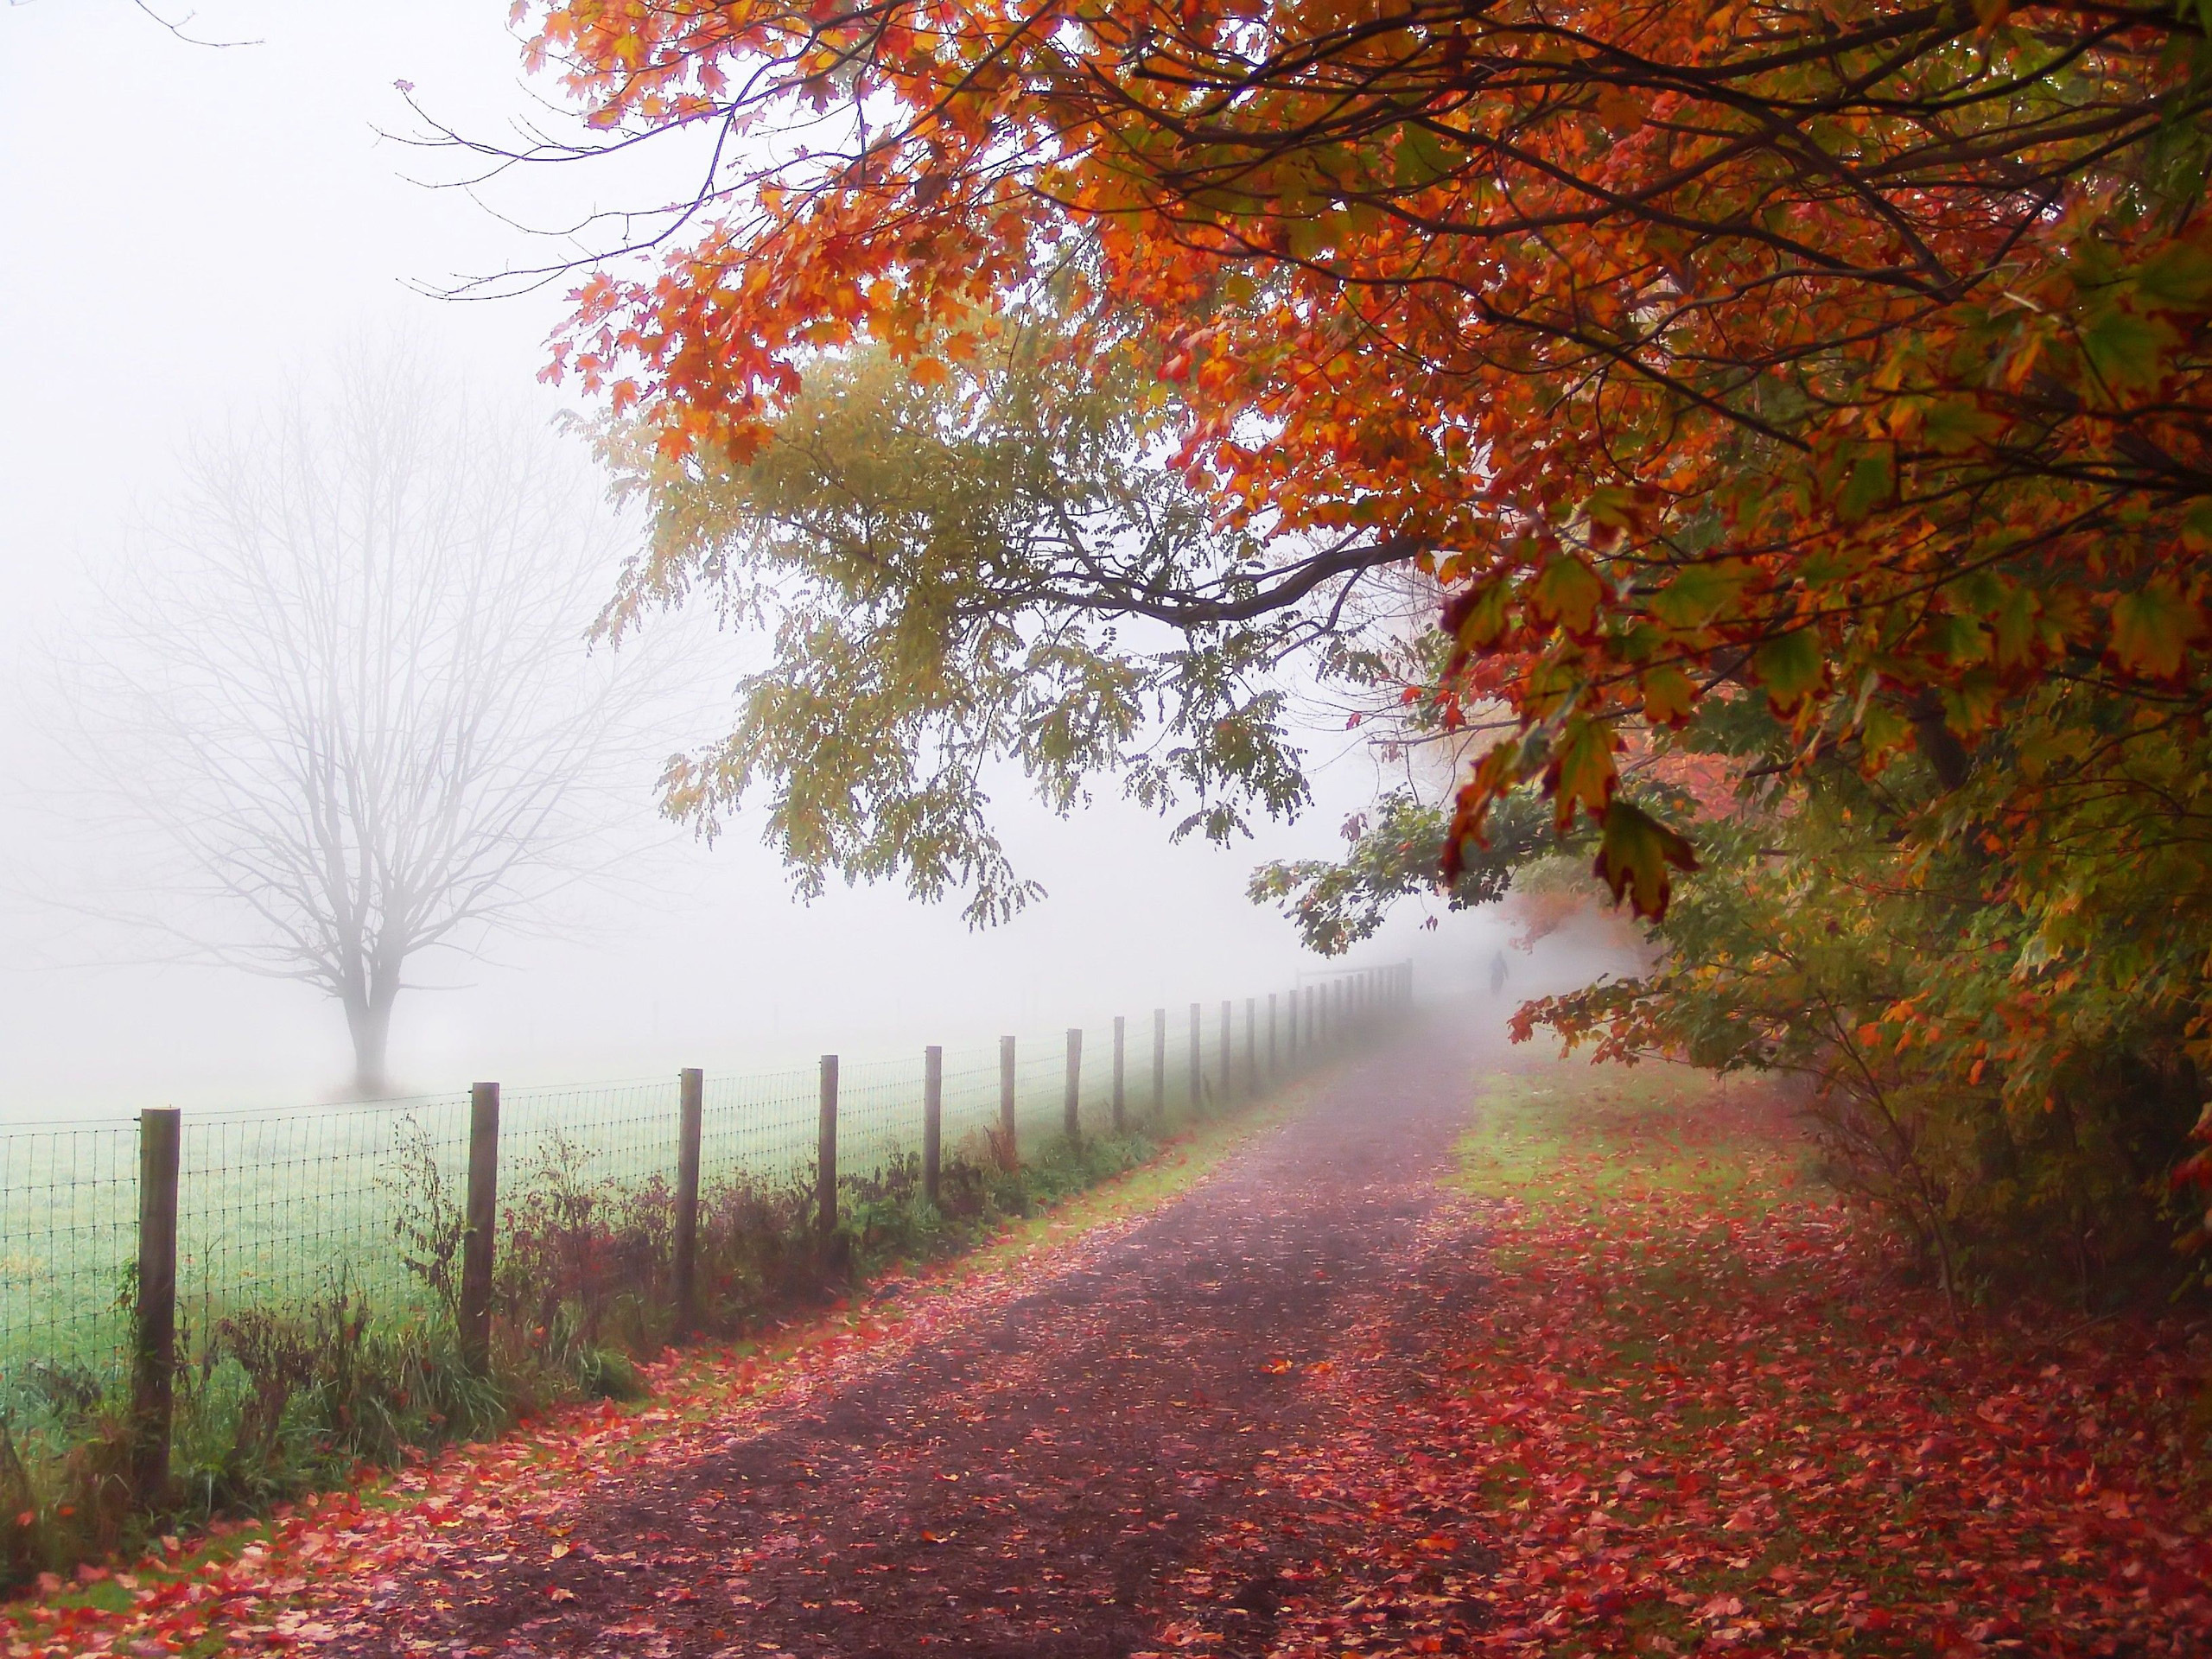 30481 download wallpaper Landscape, Trees, Roads, Autumn screensavers and pictures for free